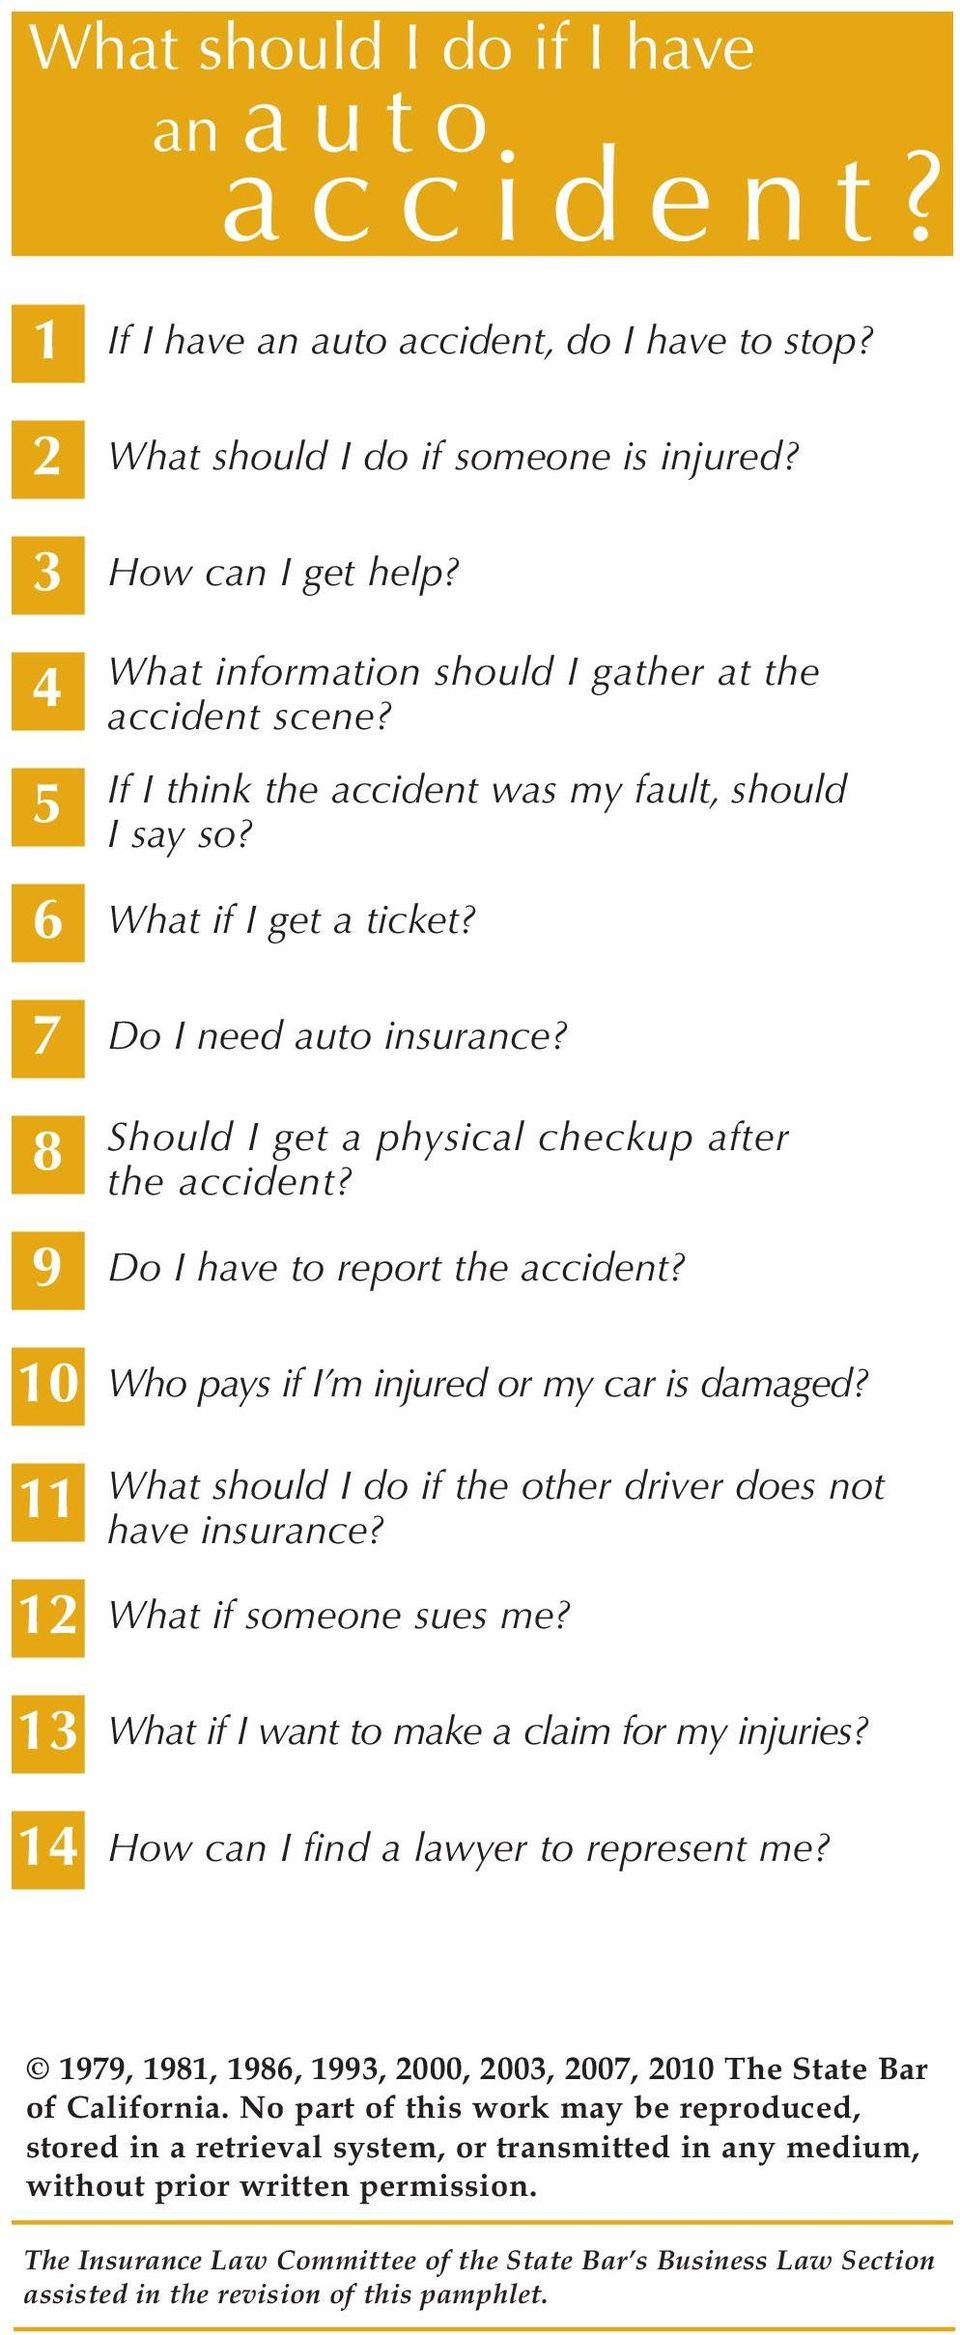 8 Should I get a physical checkup after the accident? 9 Do I have to report the accident? 10 Who pays if I m injured or my car is damaged?